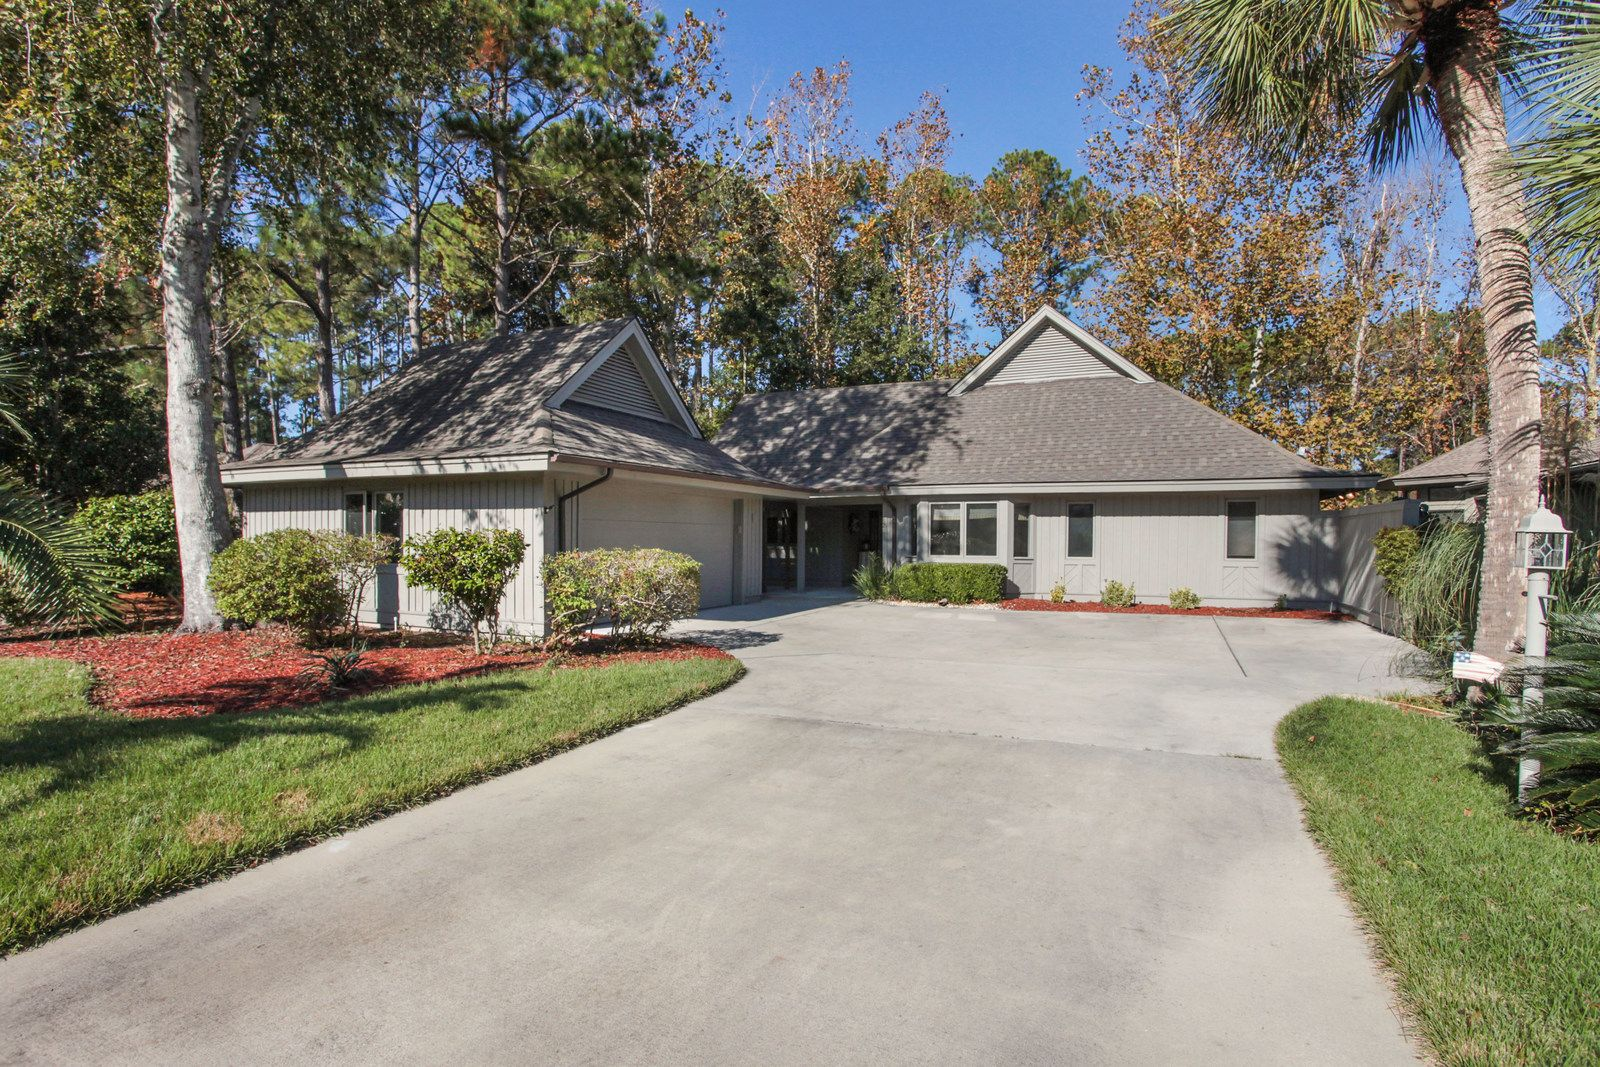 Located On The 18th Fairway Of The Hhi Counrty Club Move In Ready Turnkey Hardwood Floors Throughout Til Built In Seating Real Estate Listings Real Estate